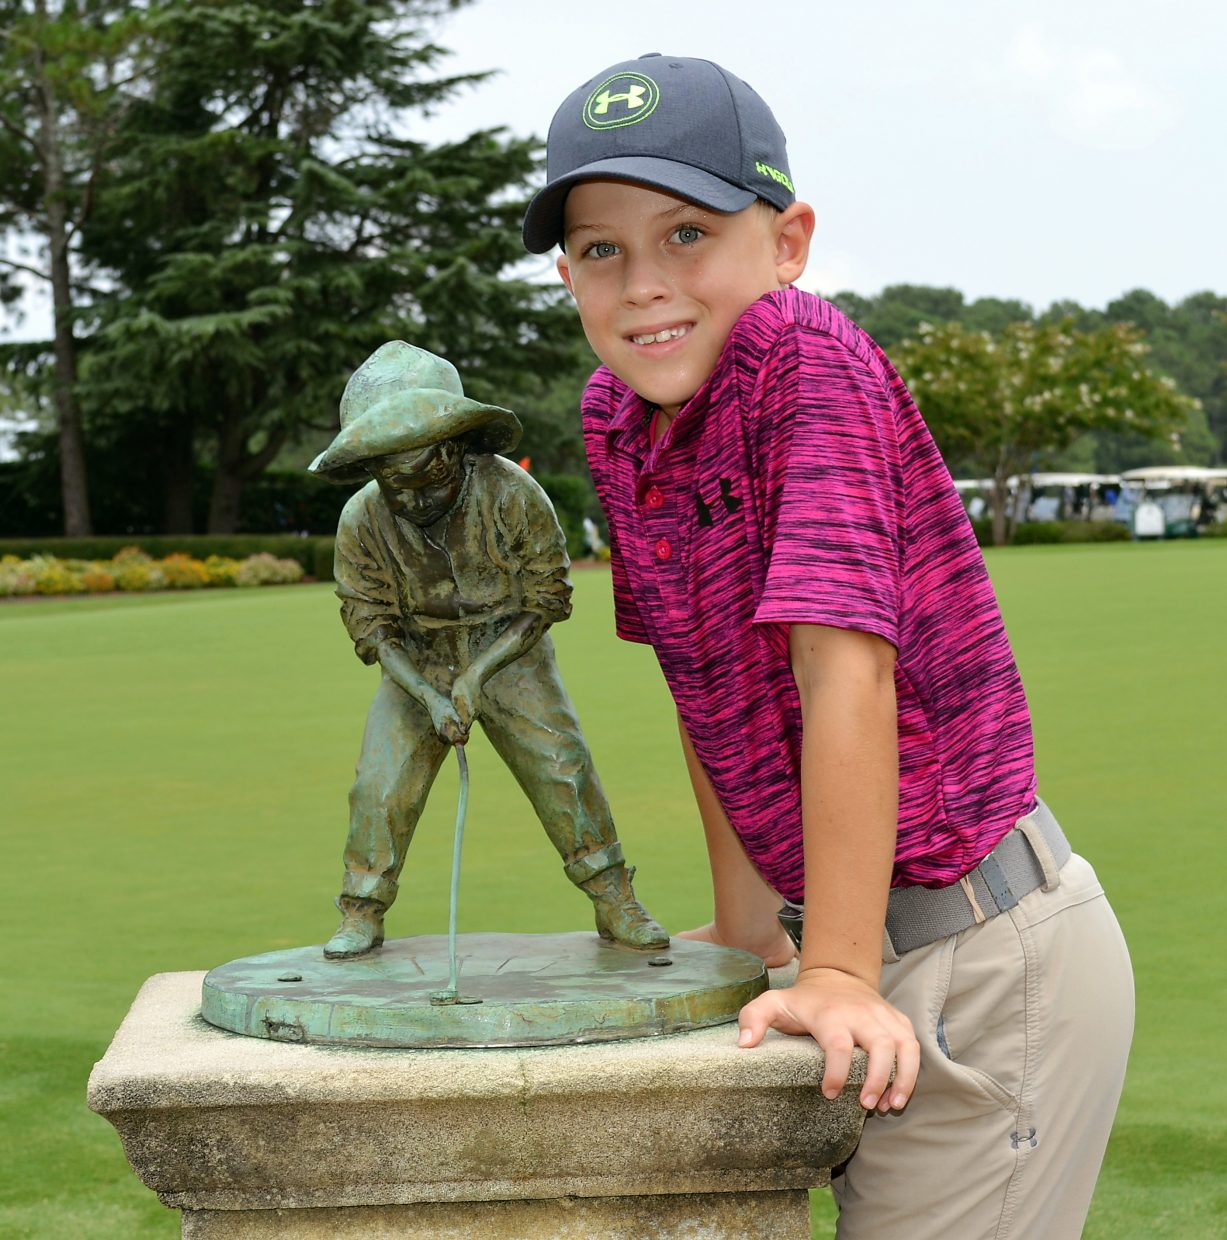 Young Jessy Huebner after winning the U.S. Kids World Golf Championship at Mid Pines Golf Club in Pinehurst, North Carolina on Aug. 6. The 7-year-old part-time Breckenridge resident shot seven under par to finish five strokes ahead of the second-place golfer.